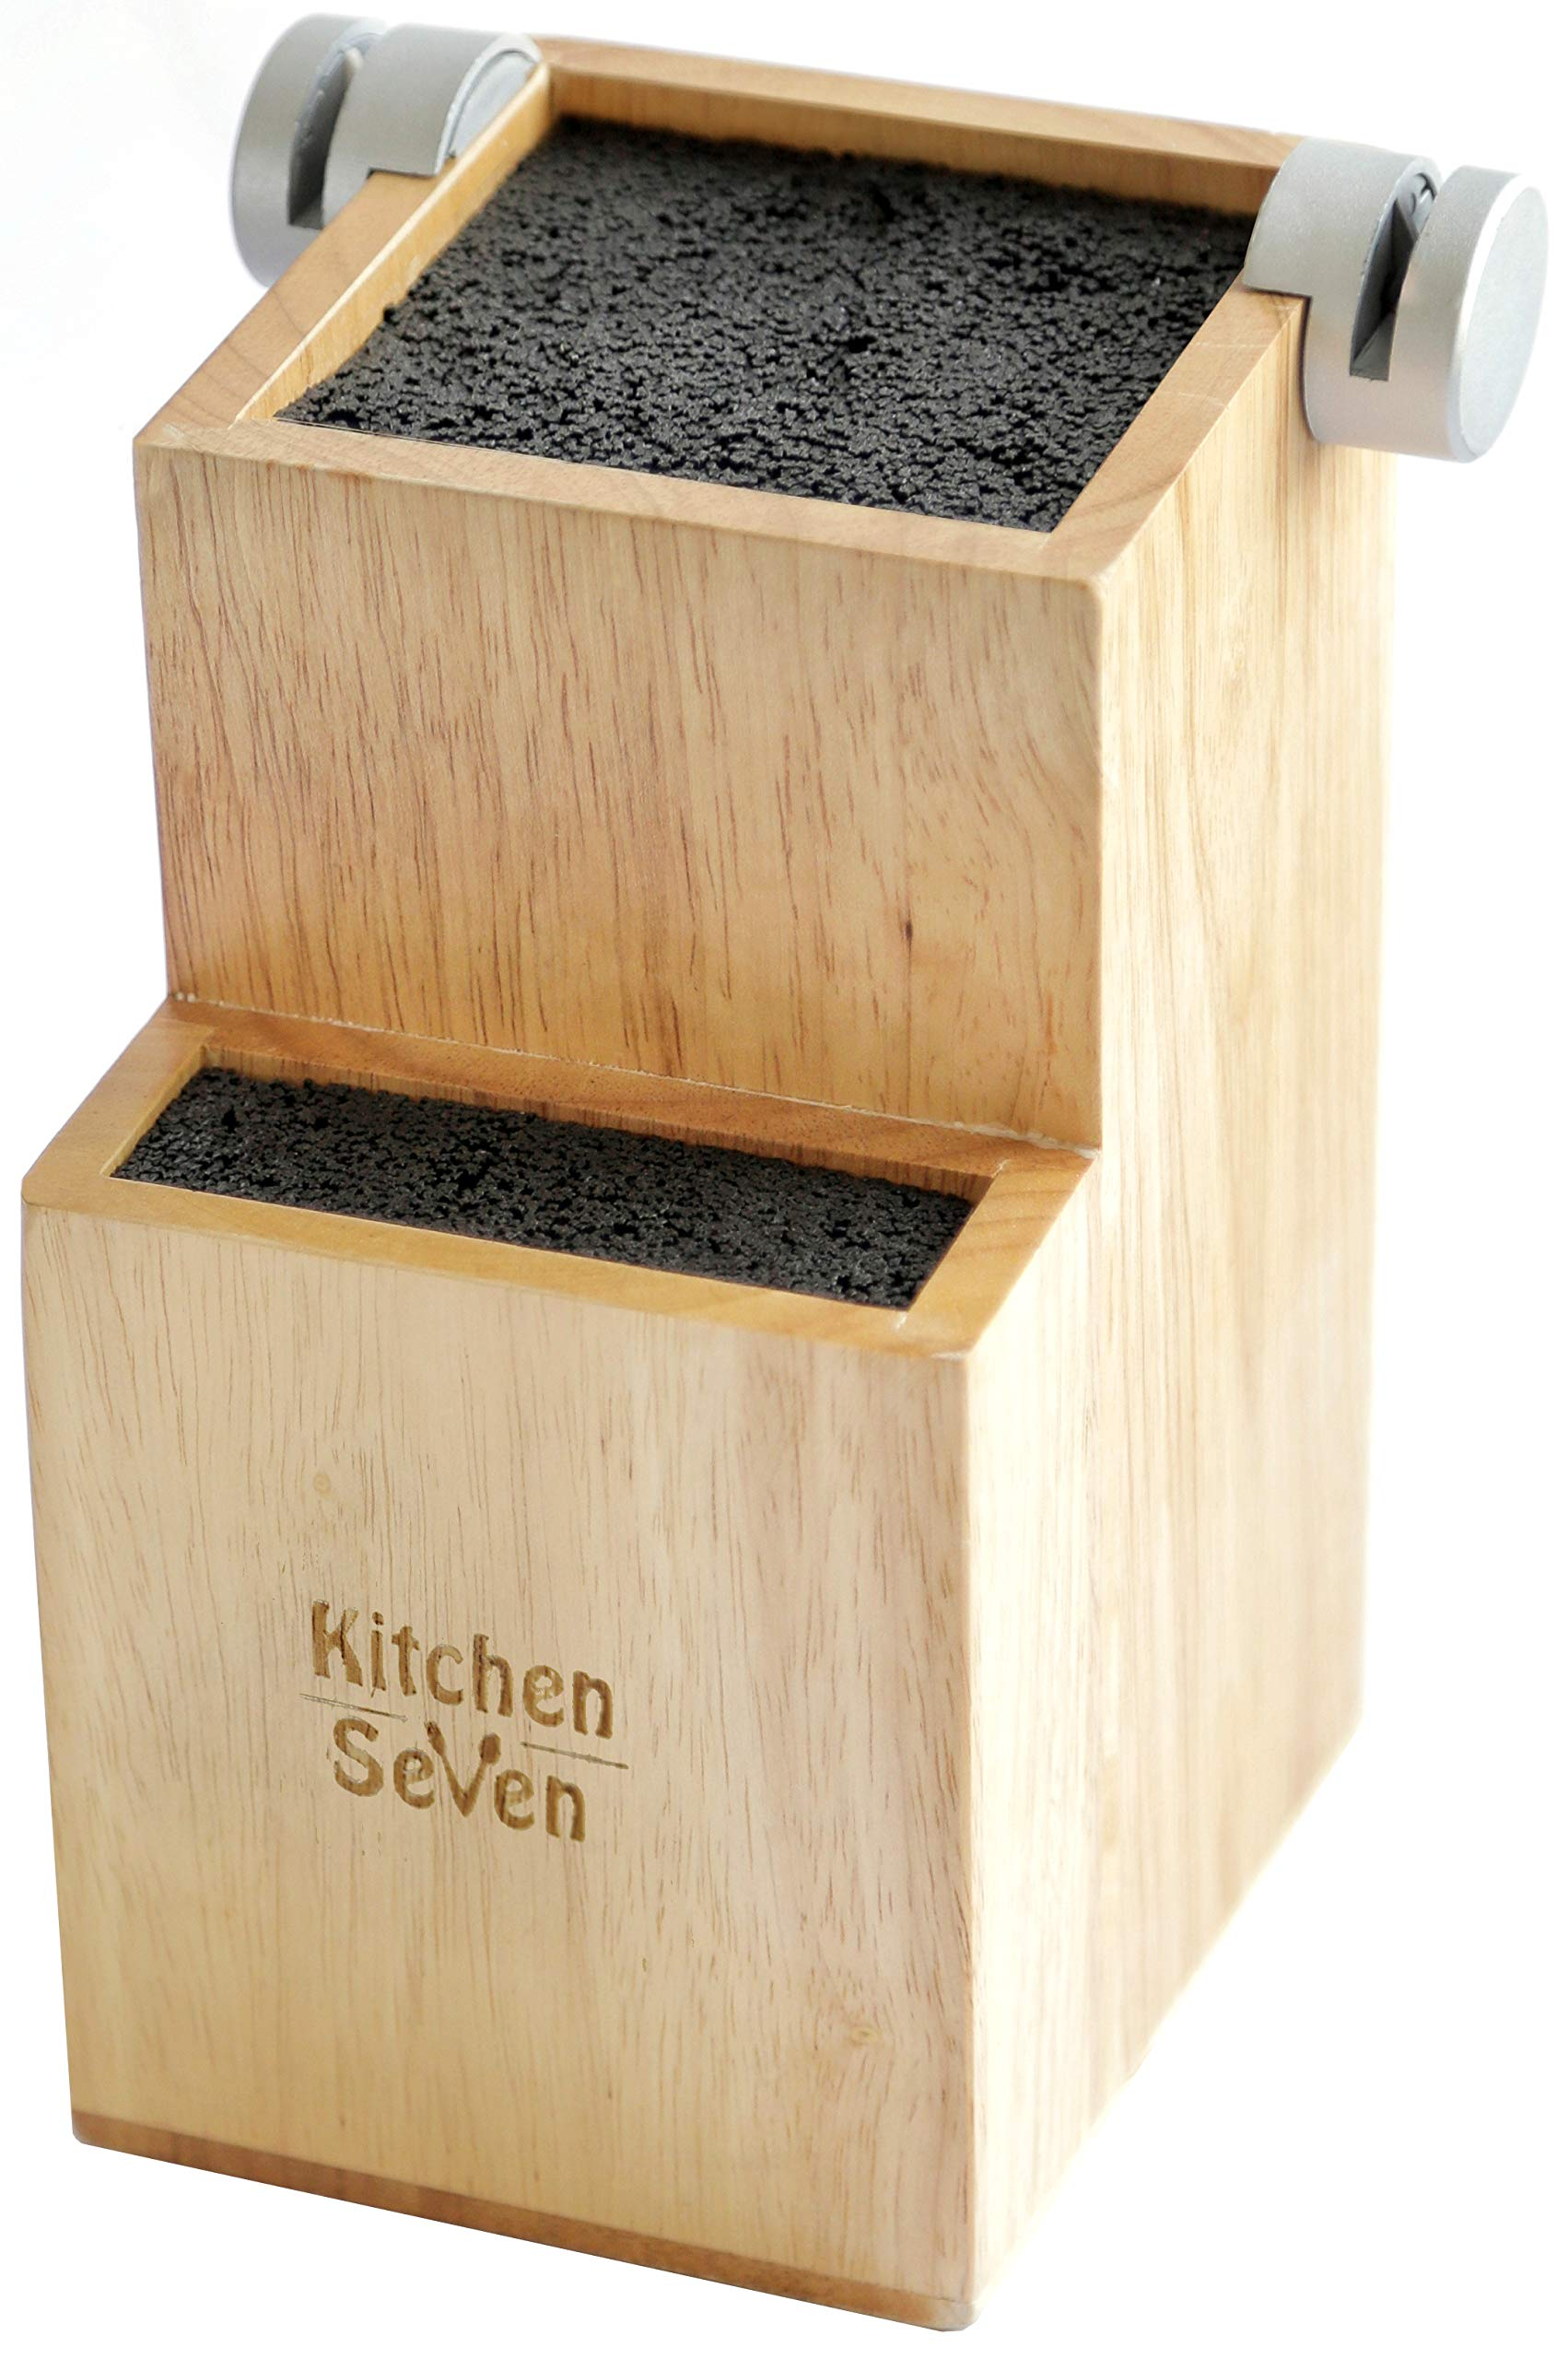 Bamboo Universal Knife Block – 2-Tiered Modern Knife Holder Stores Up to 16 Large and Small Knives – Hand-Finished, Easy Clean Bamboo Knife Organizer with 2 Built-In Knife Sharpeners by Kitchen Seven